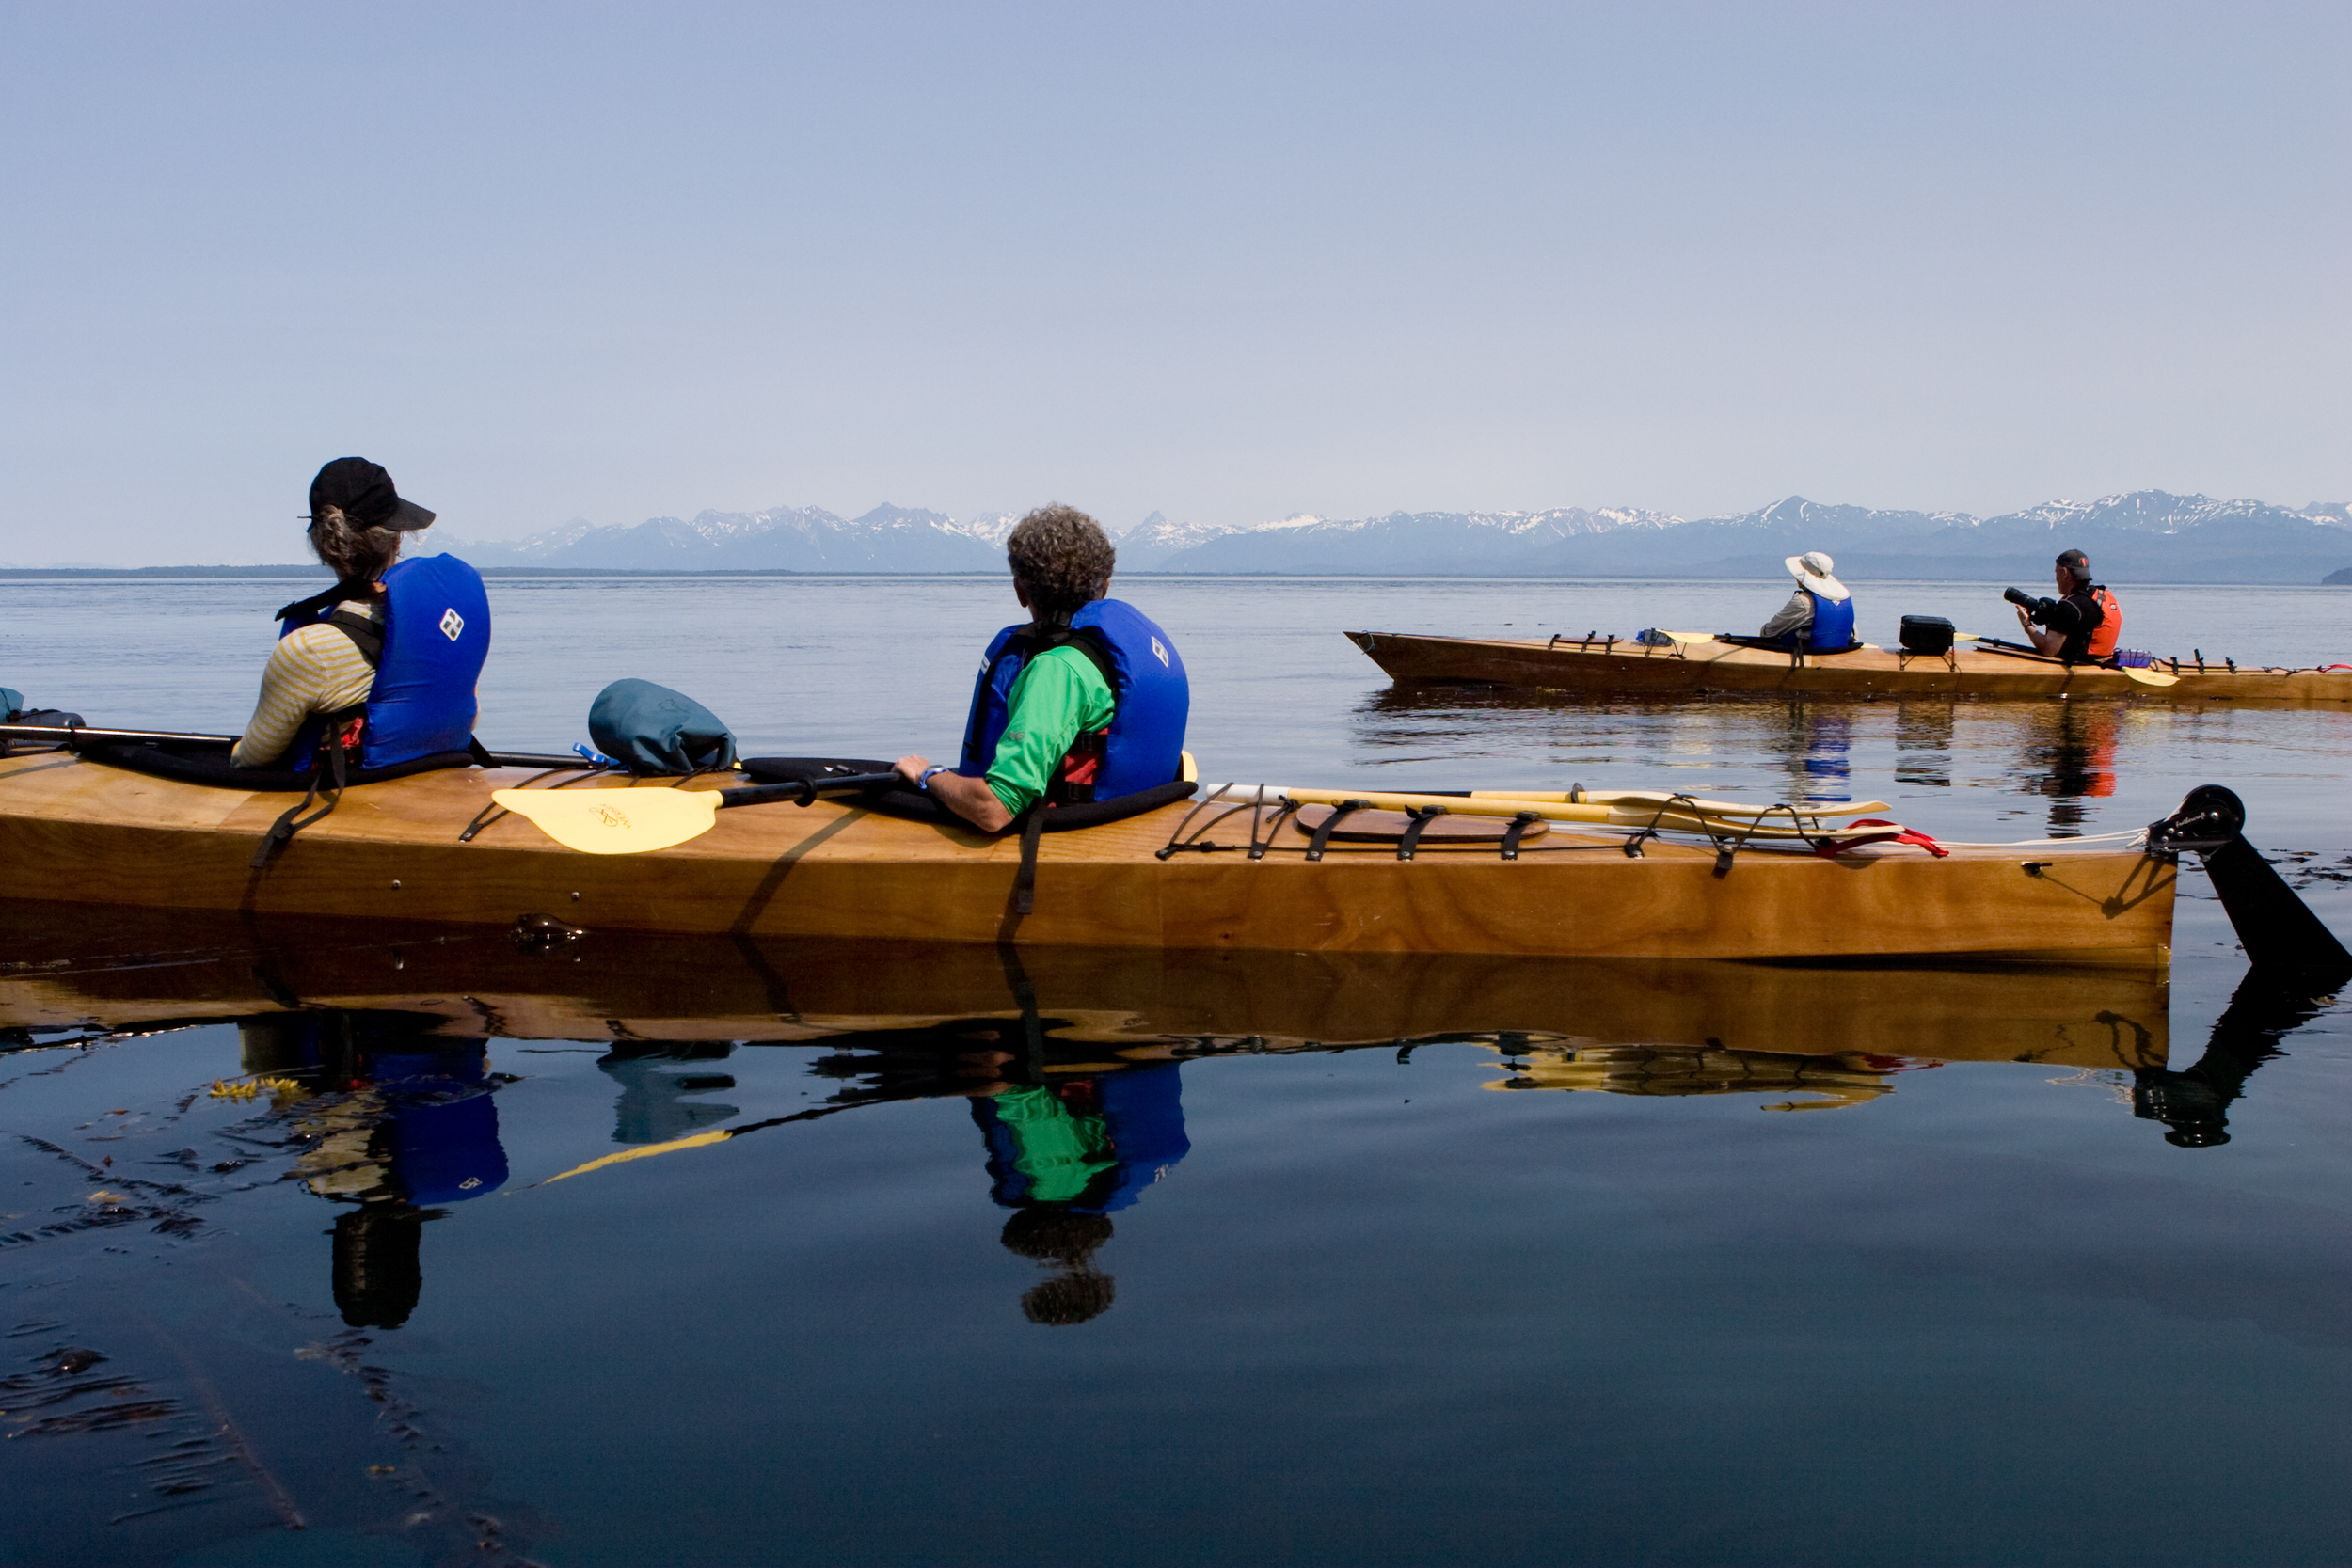 A group of kayakers watch the waters of Icy Strait for signs of humpback whales. Chichagof Island, Alaska.